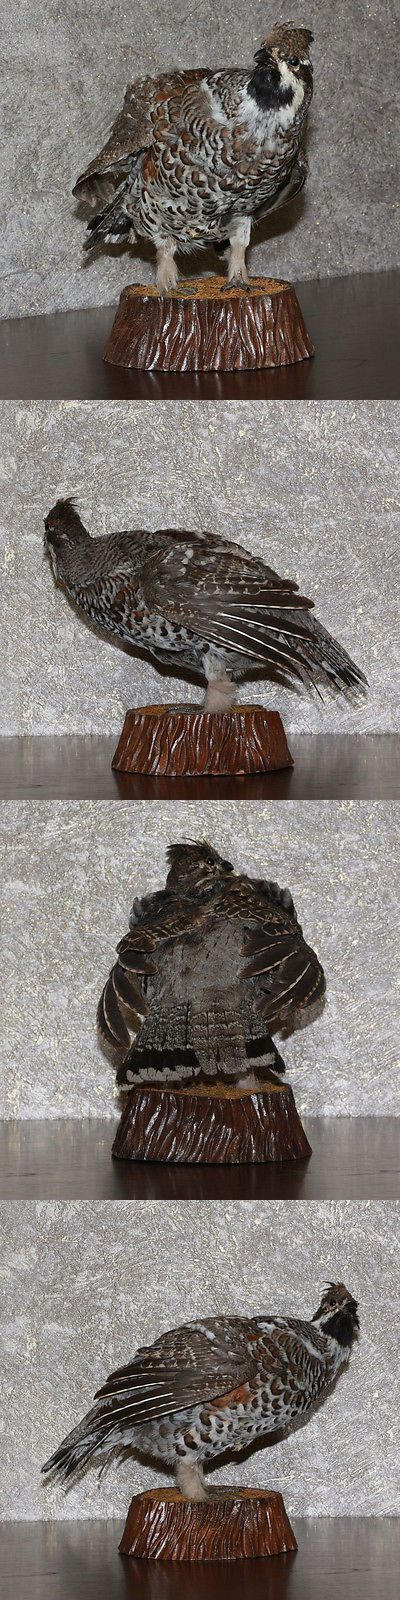 Birds 71123: Hazel Grouse - Taxidermy Bird Mount, Stuffed Bird For Sale - Hazel Hen BUY IT NOW ONLY: $79.0